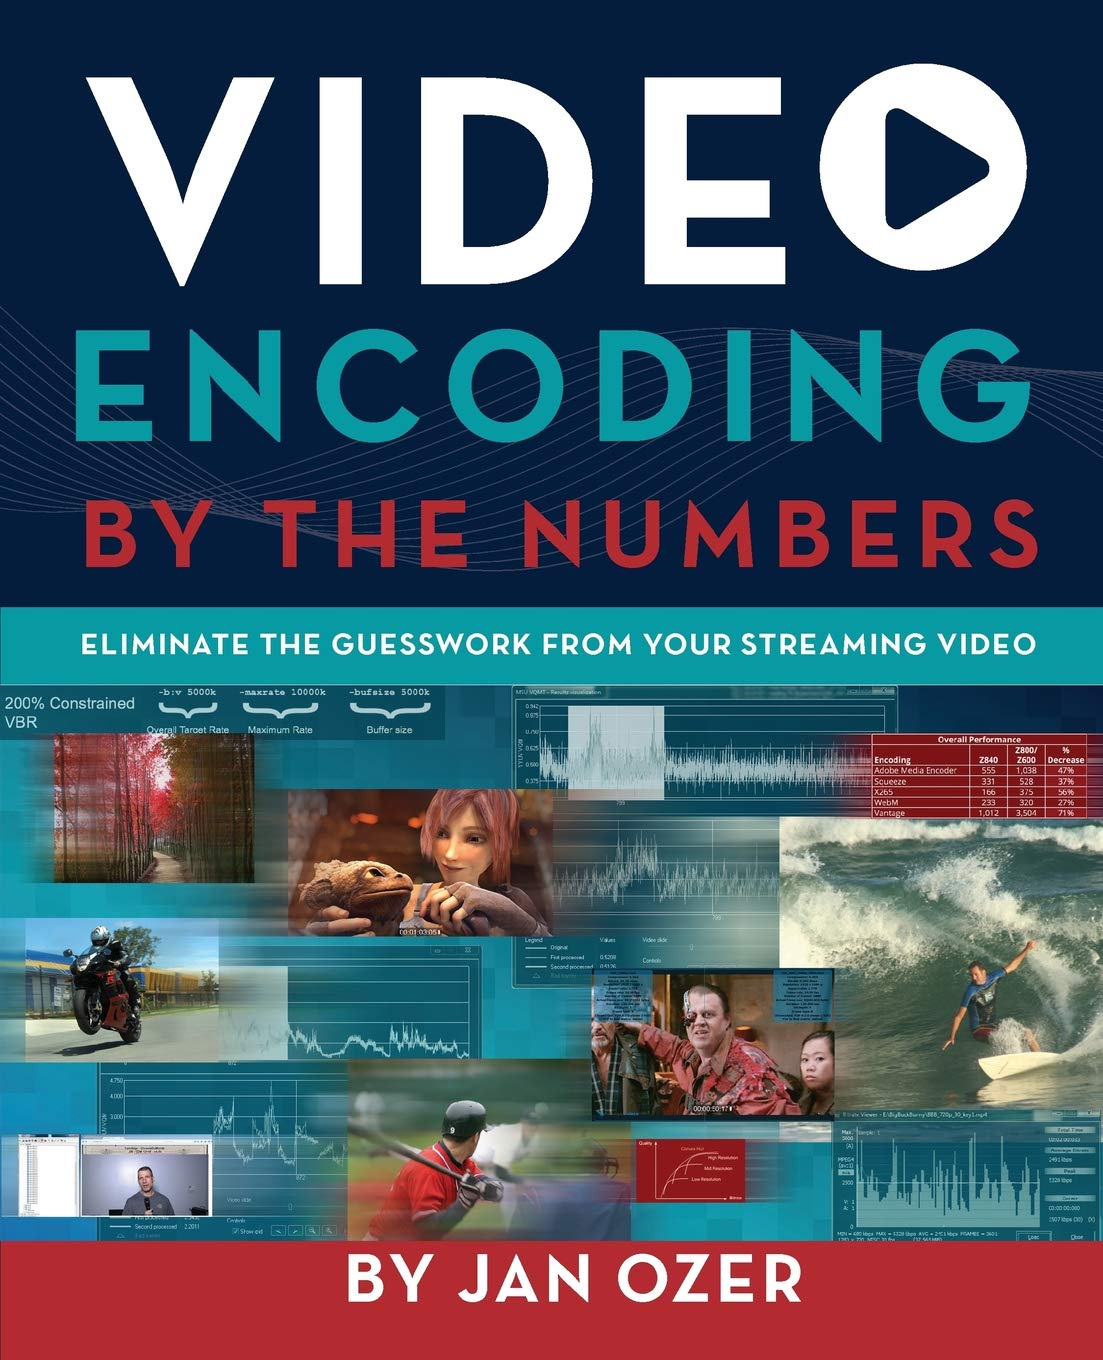 Video Encoding by the Numbers: Eliminate the Guesswork from